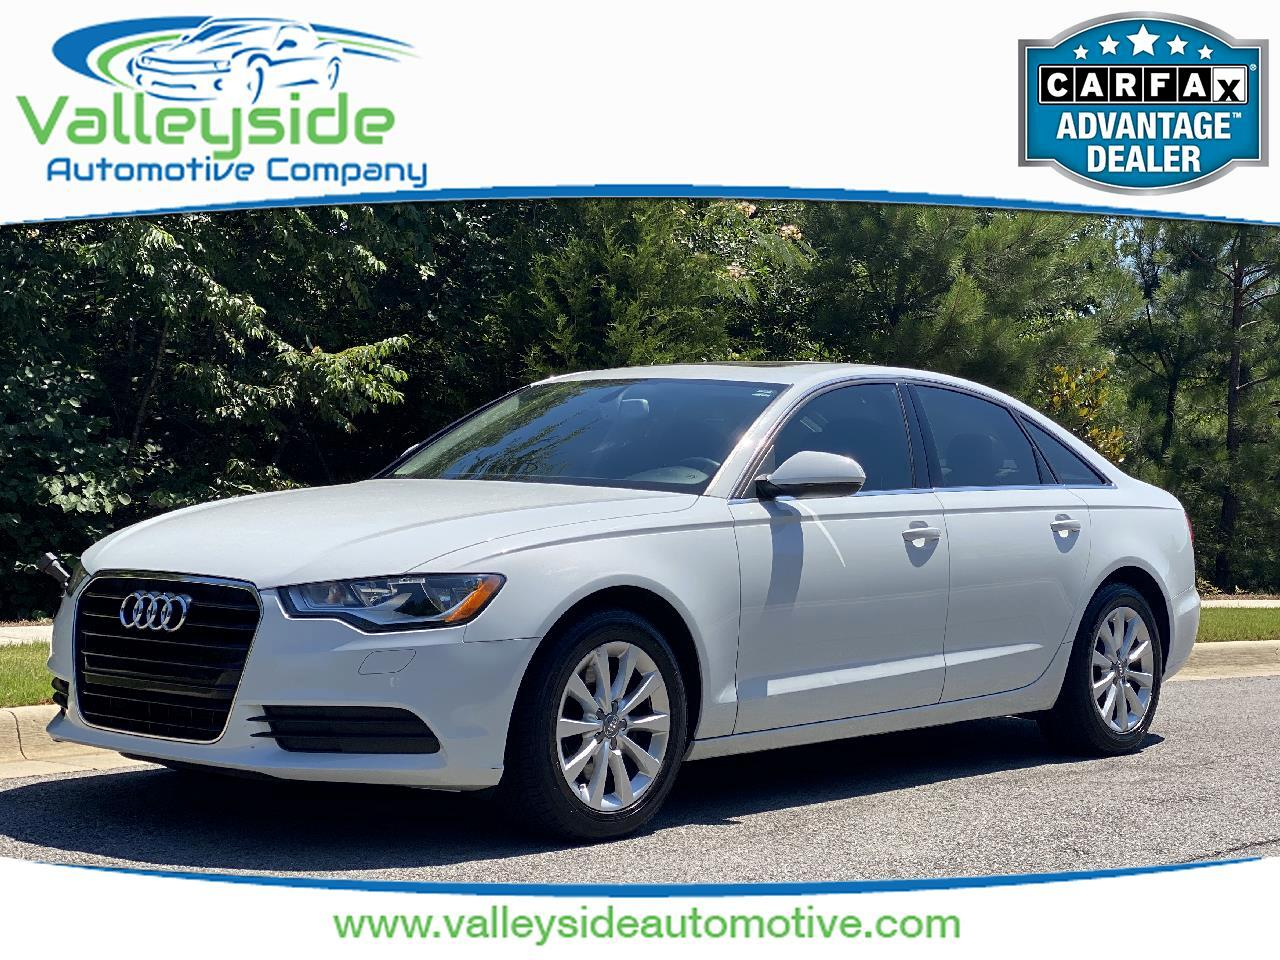 Audi A6 2.0T Premium Sedan FrontTrak Multitronic 2014